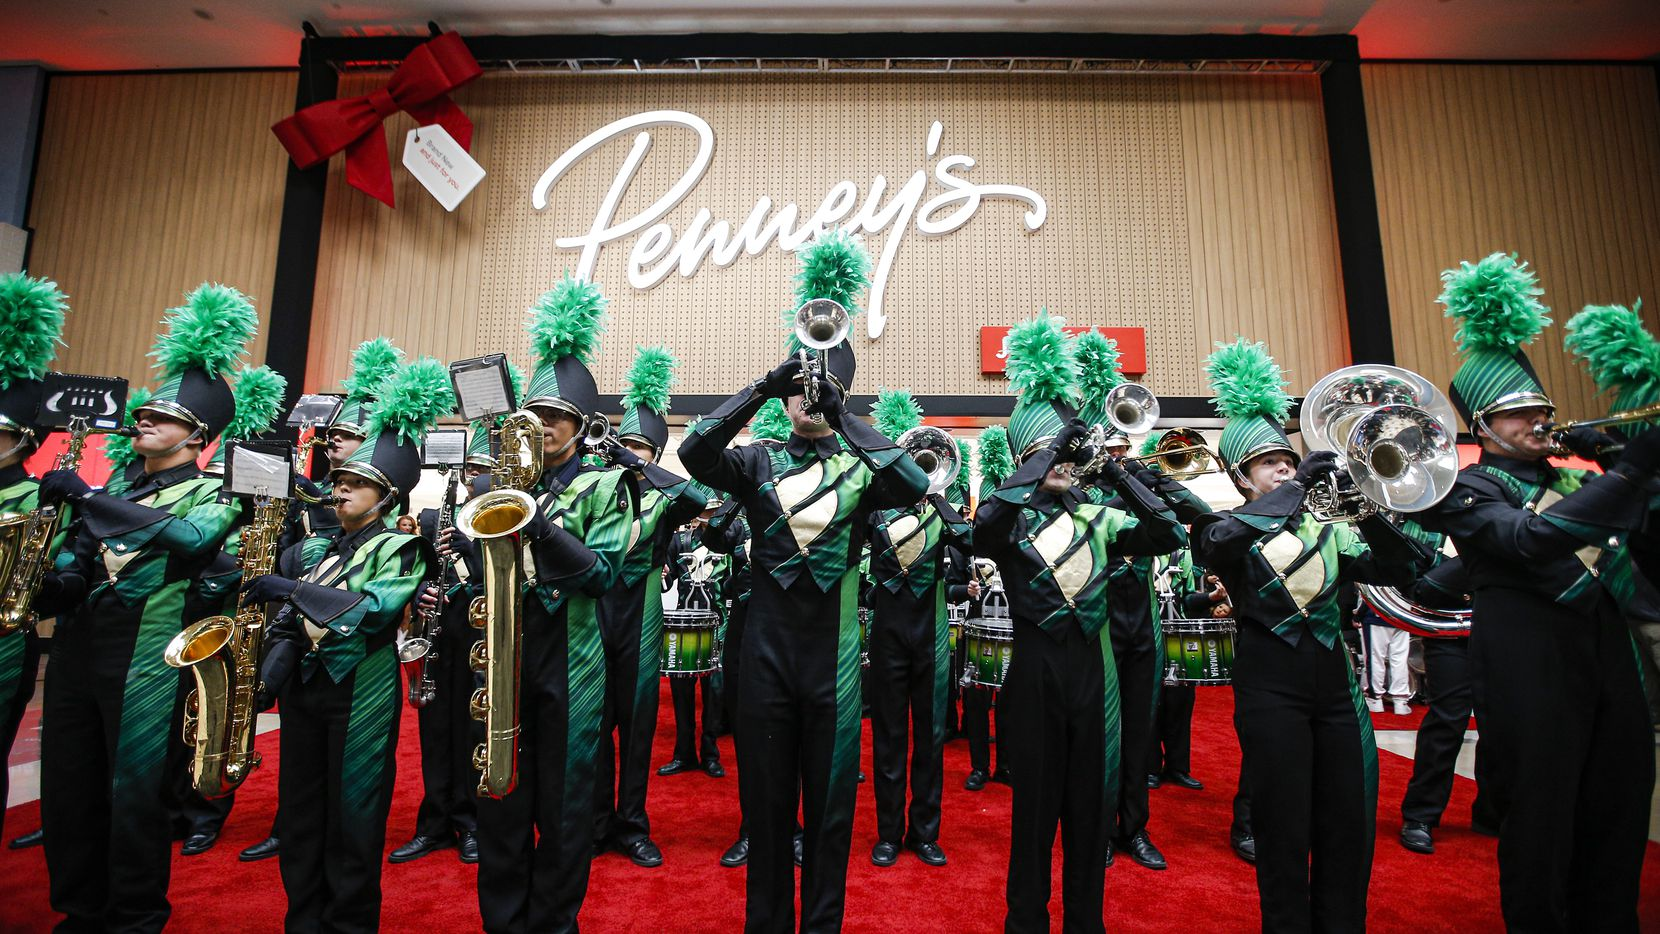 A year ago Sunday, the Birdville High School Marching Band performed at the grand opening of a new lab Penney's store in Hurst's North East Mall. The Plano-based retailer had a new turnaround plan and management team. Things were looking up for the department store chain. Just a few months later 2020 brought COVID-19 and led to J.C. Penney filing for bankruptcy. It's getting another chance with a sale approved Monday by the U.S. Bankruptcy Court.